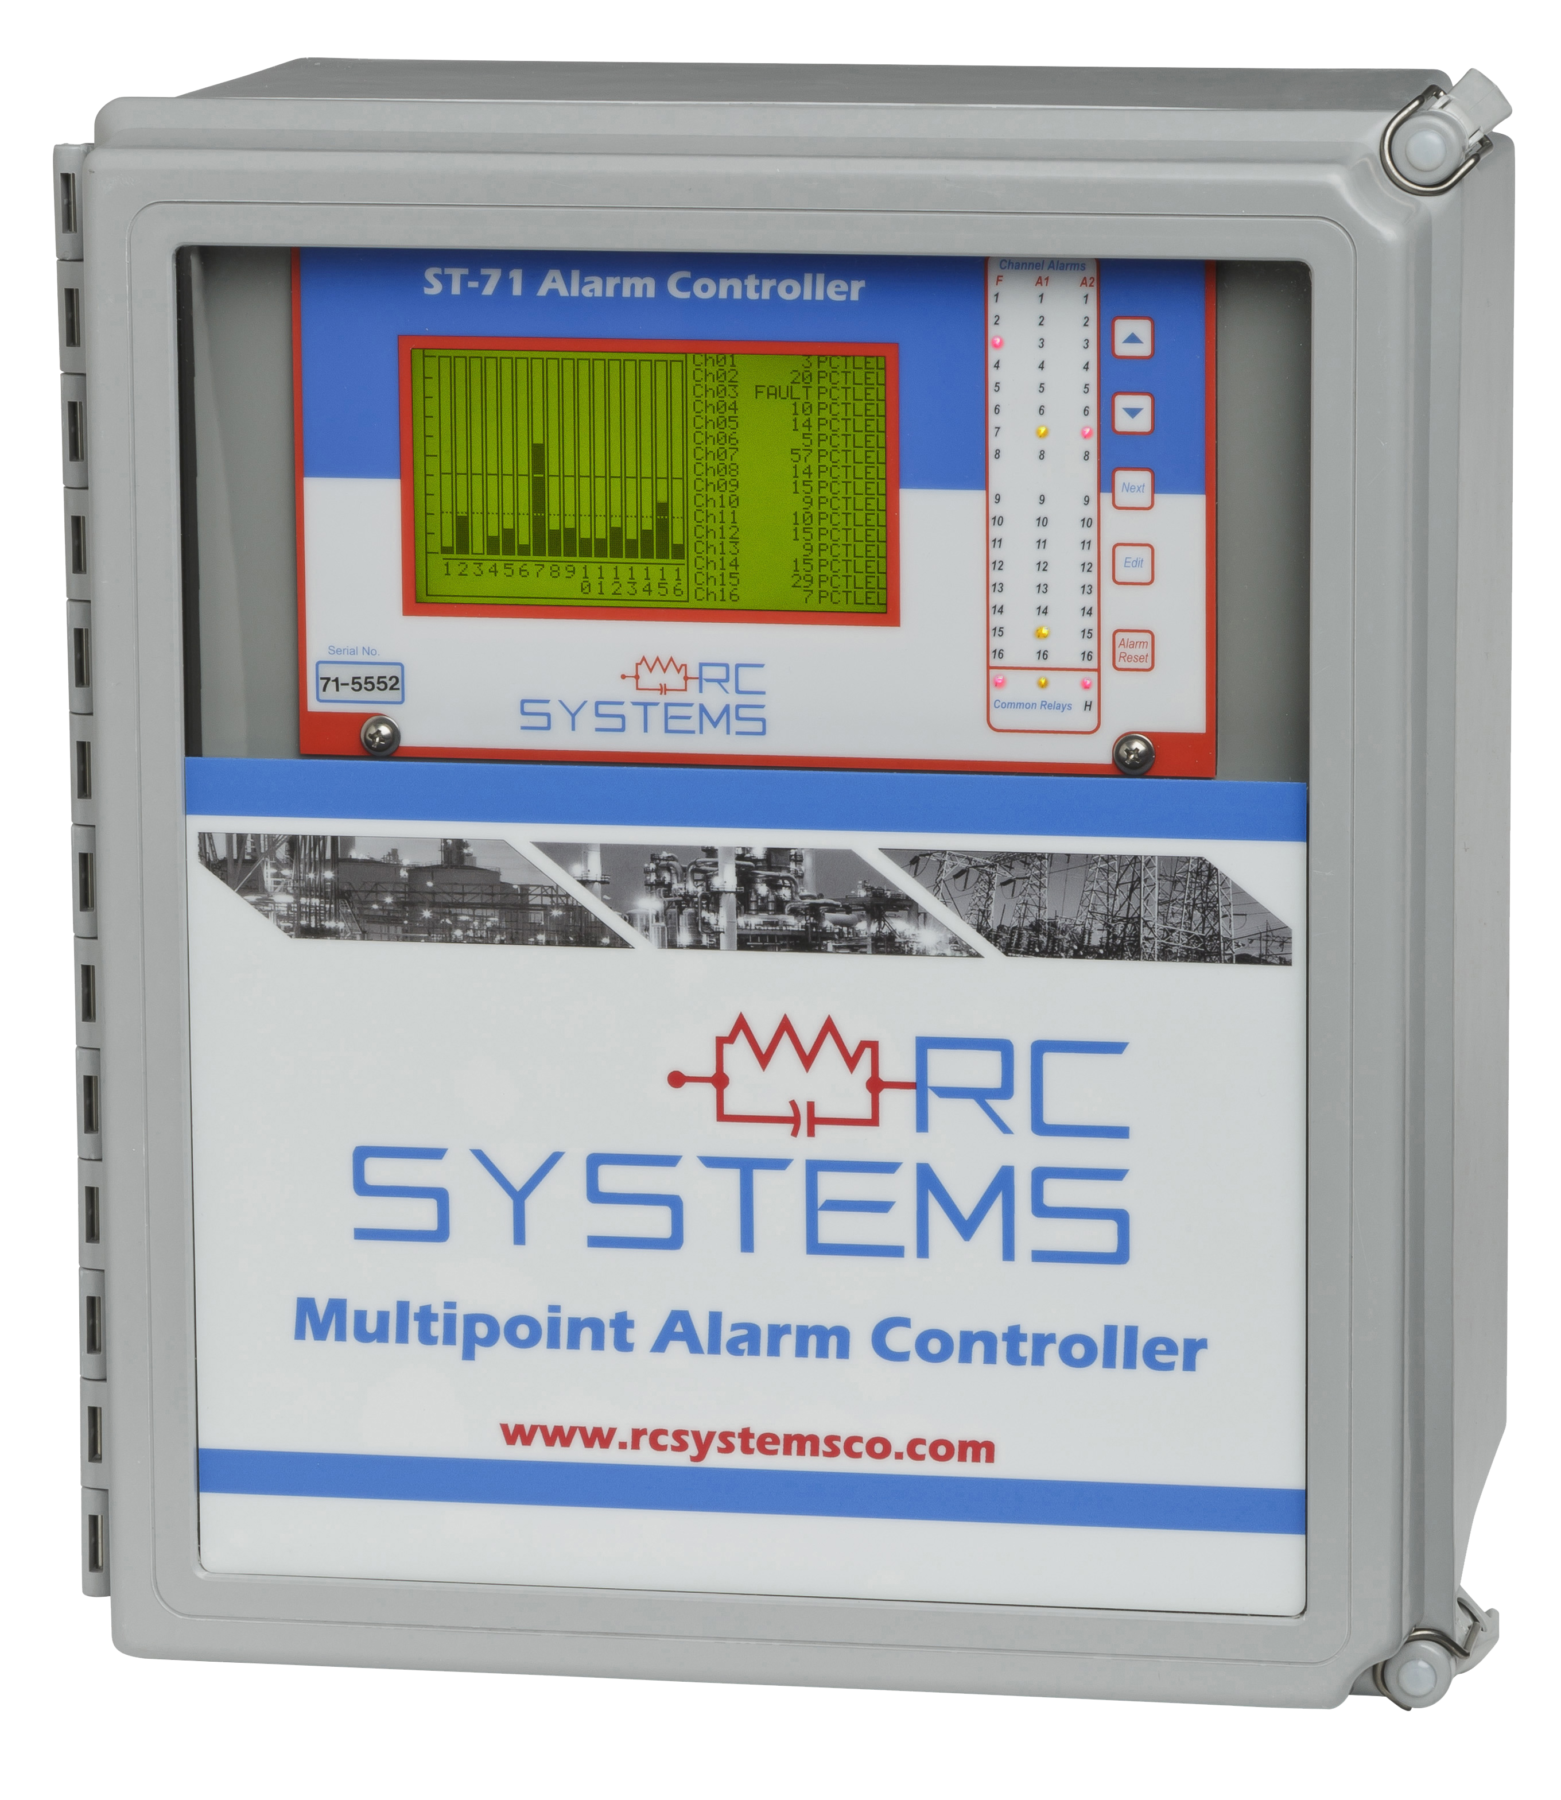 RC Systems Alarm Controllers